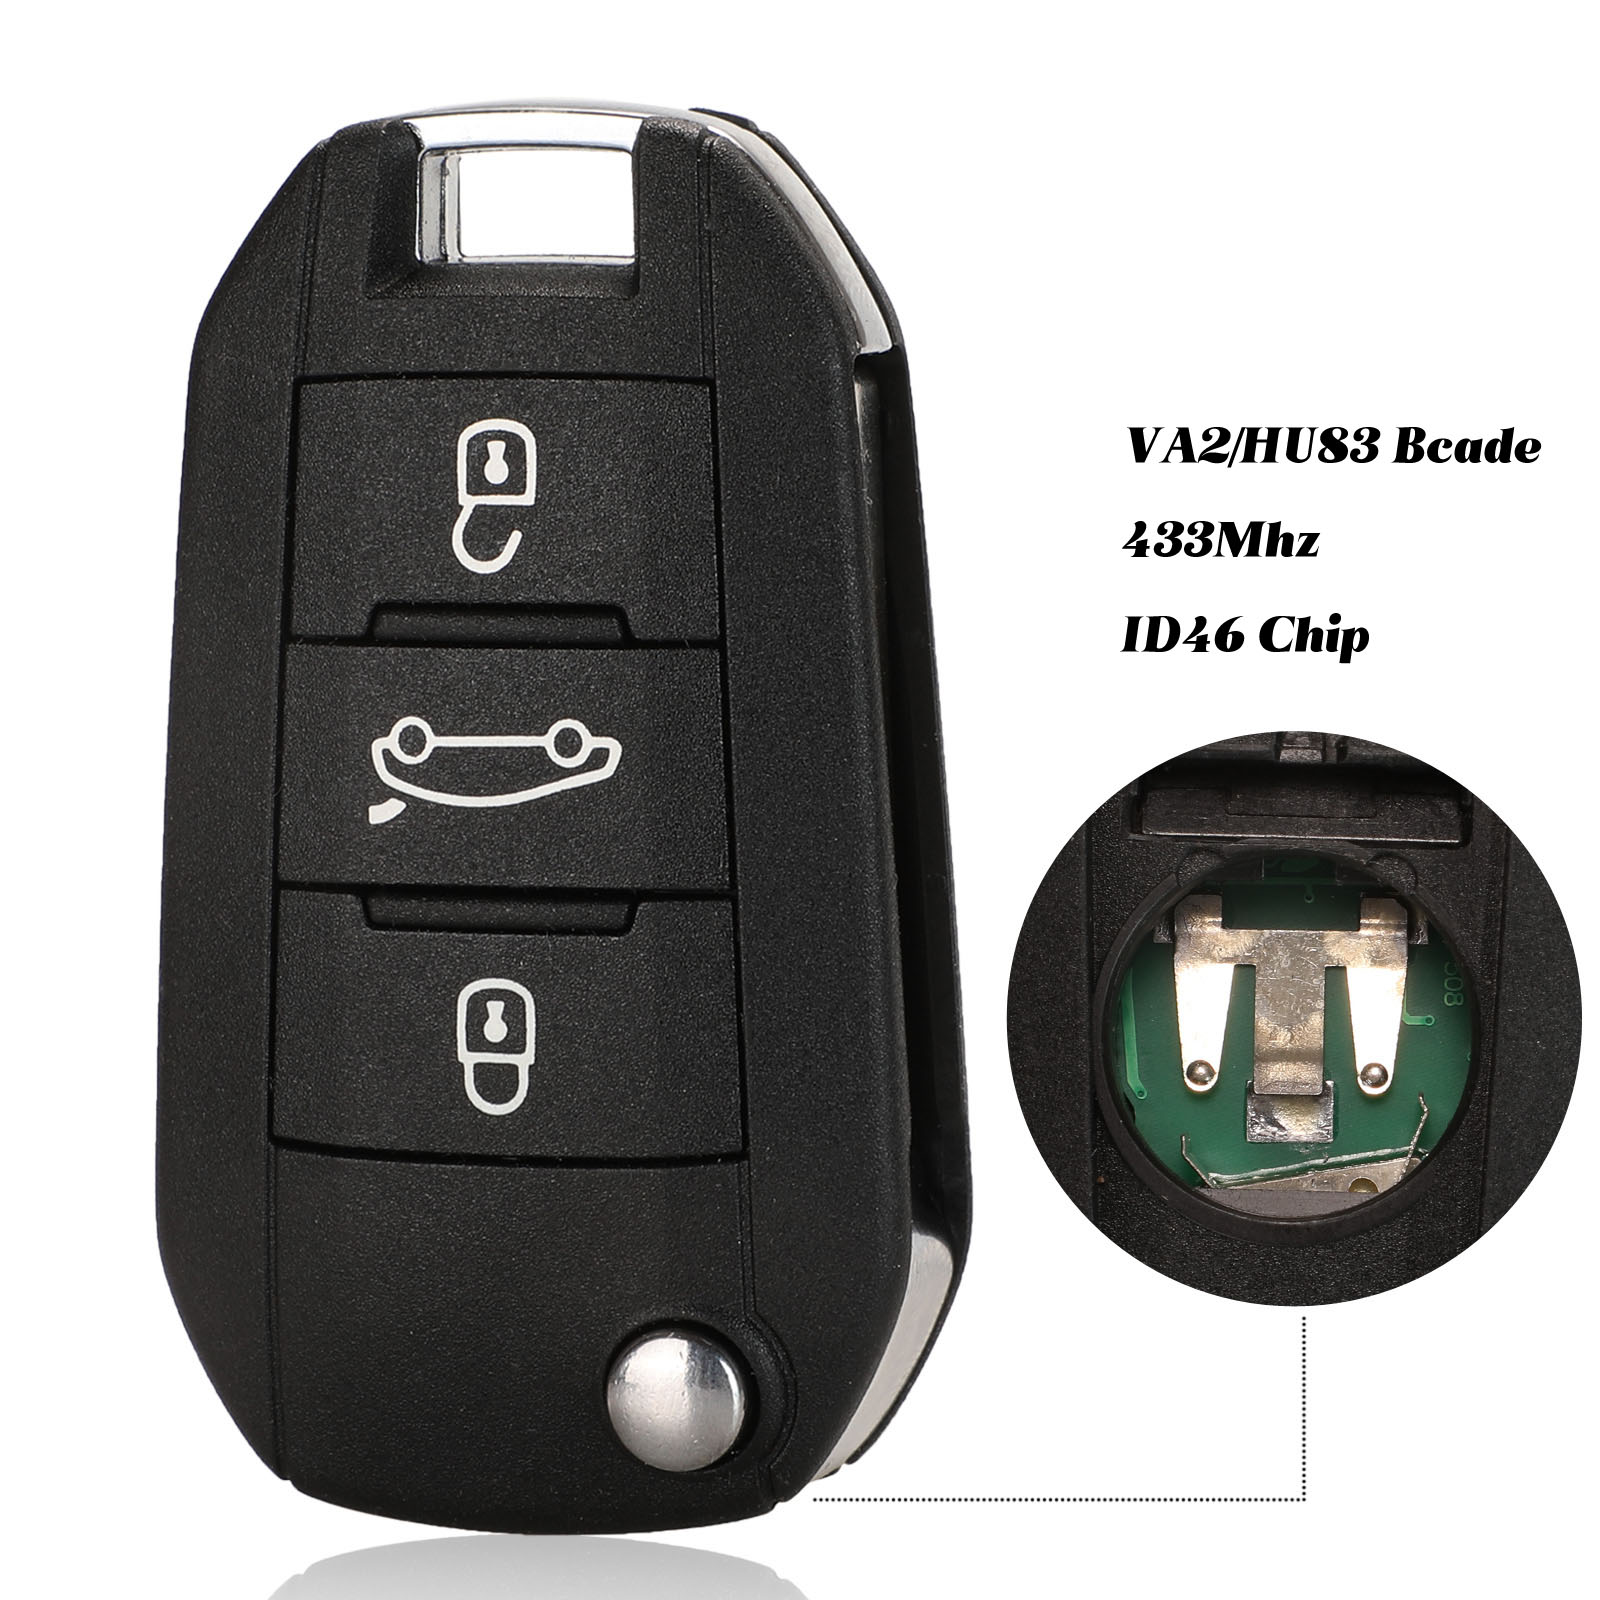 jingyuqin 434MHz ID46 Car <font><b>Remote</b></font> <font><b>Key</b></font> For <font><b>Peugeot</b></font> <font><b>208</b></font> 2008 301 308 5008 508 Hella HU83 Blade image